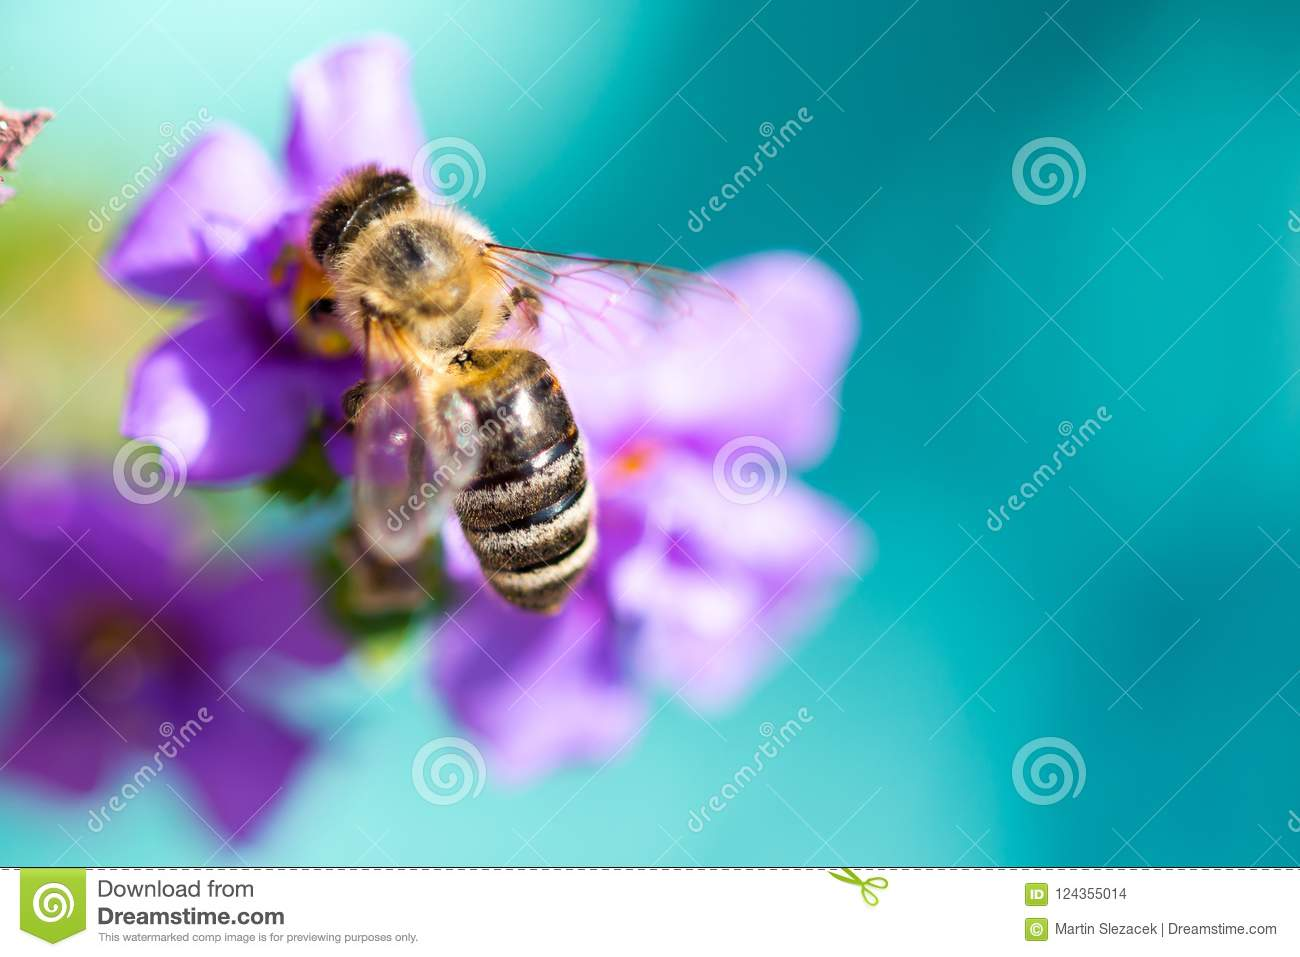 Bee on the flower. Small useful insect is working and making honey. Honeybee with wing on the blossom. Spring at countryside of me